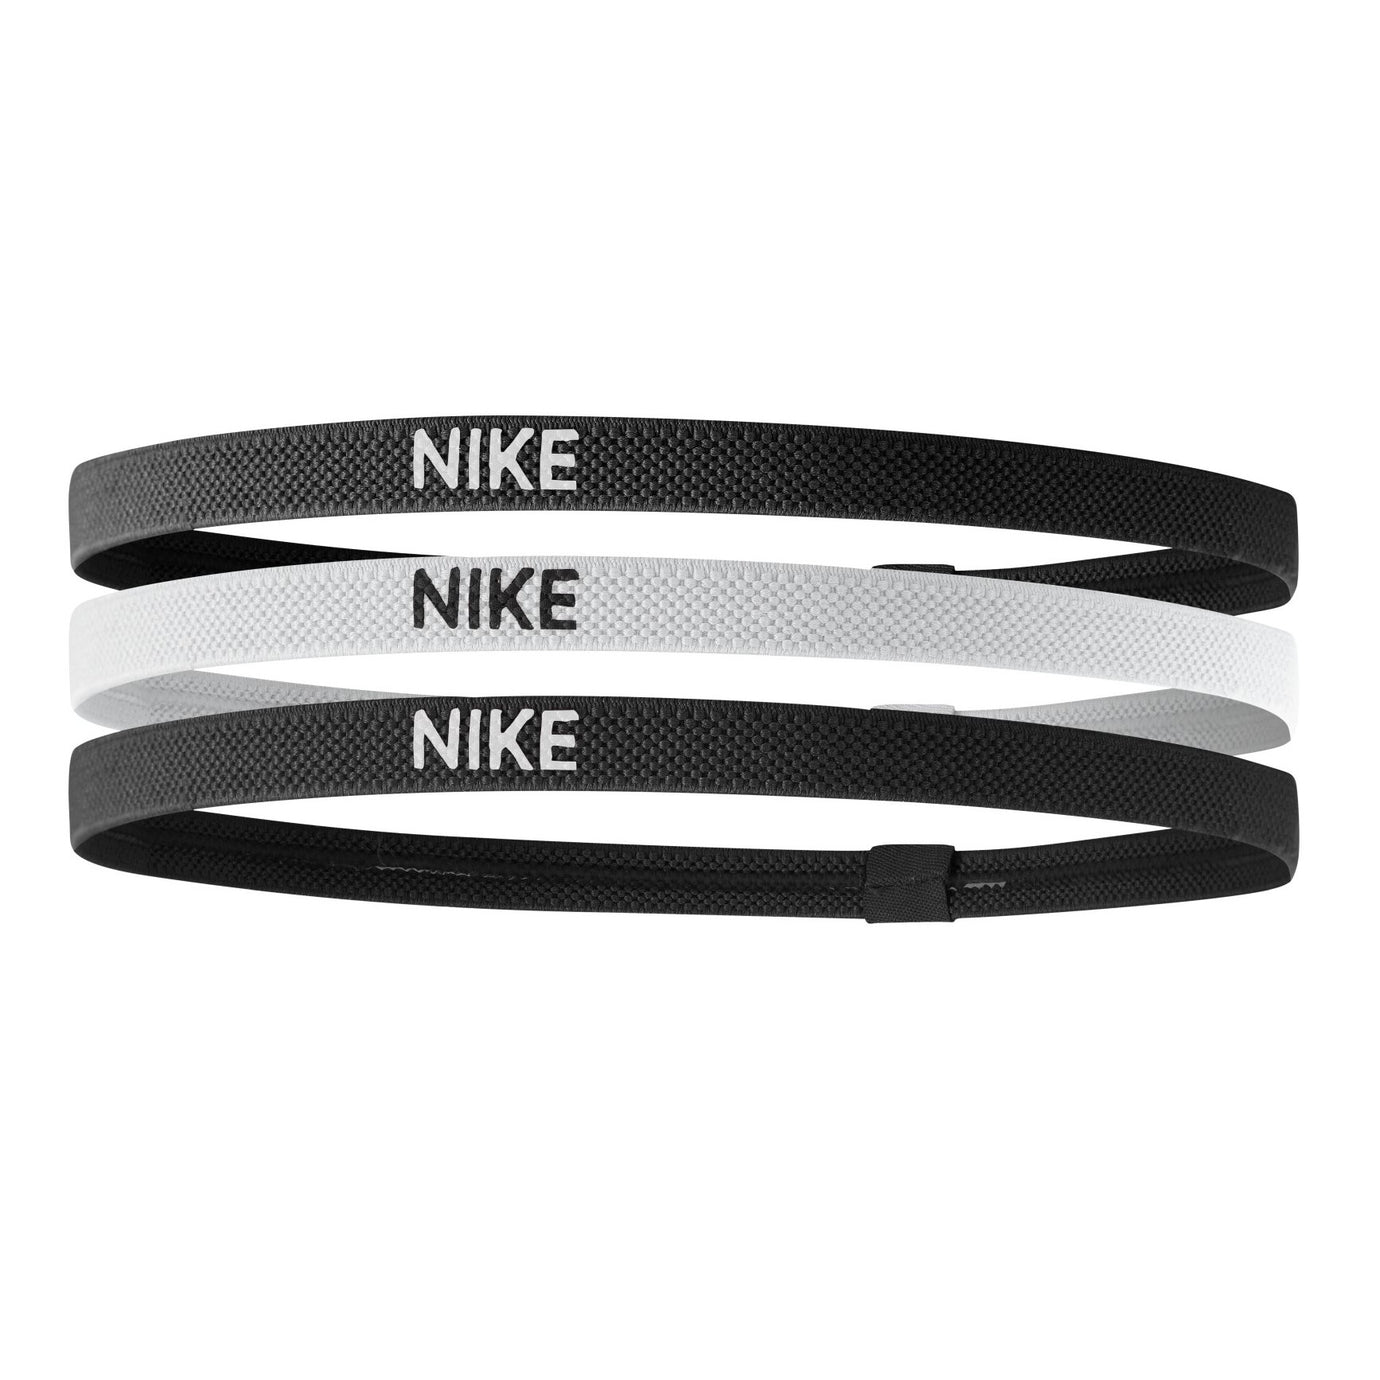 NIKE ELASTIC HAIRBAND 3p. BLACK/WHITE/BLACK